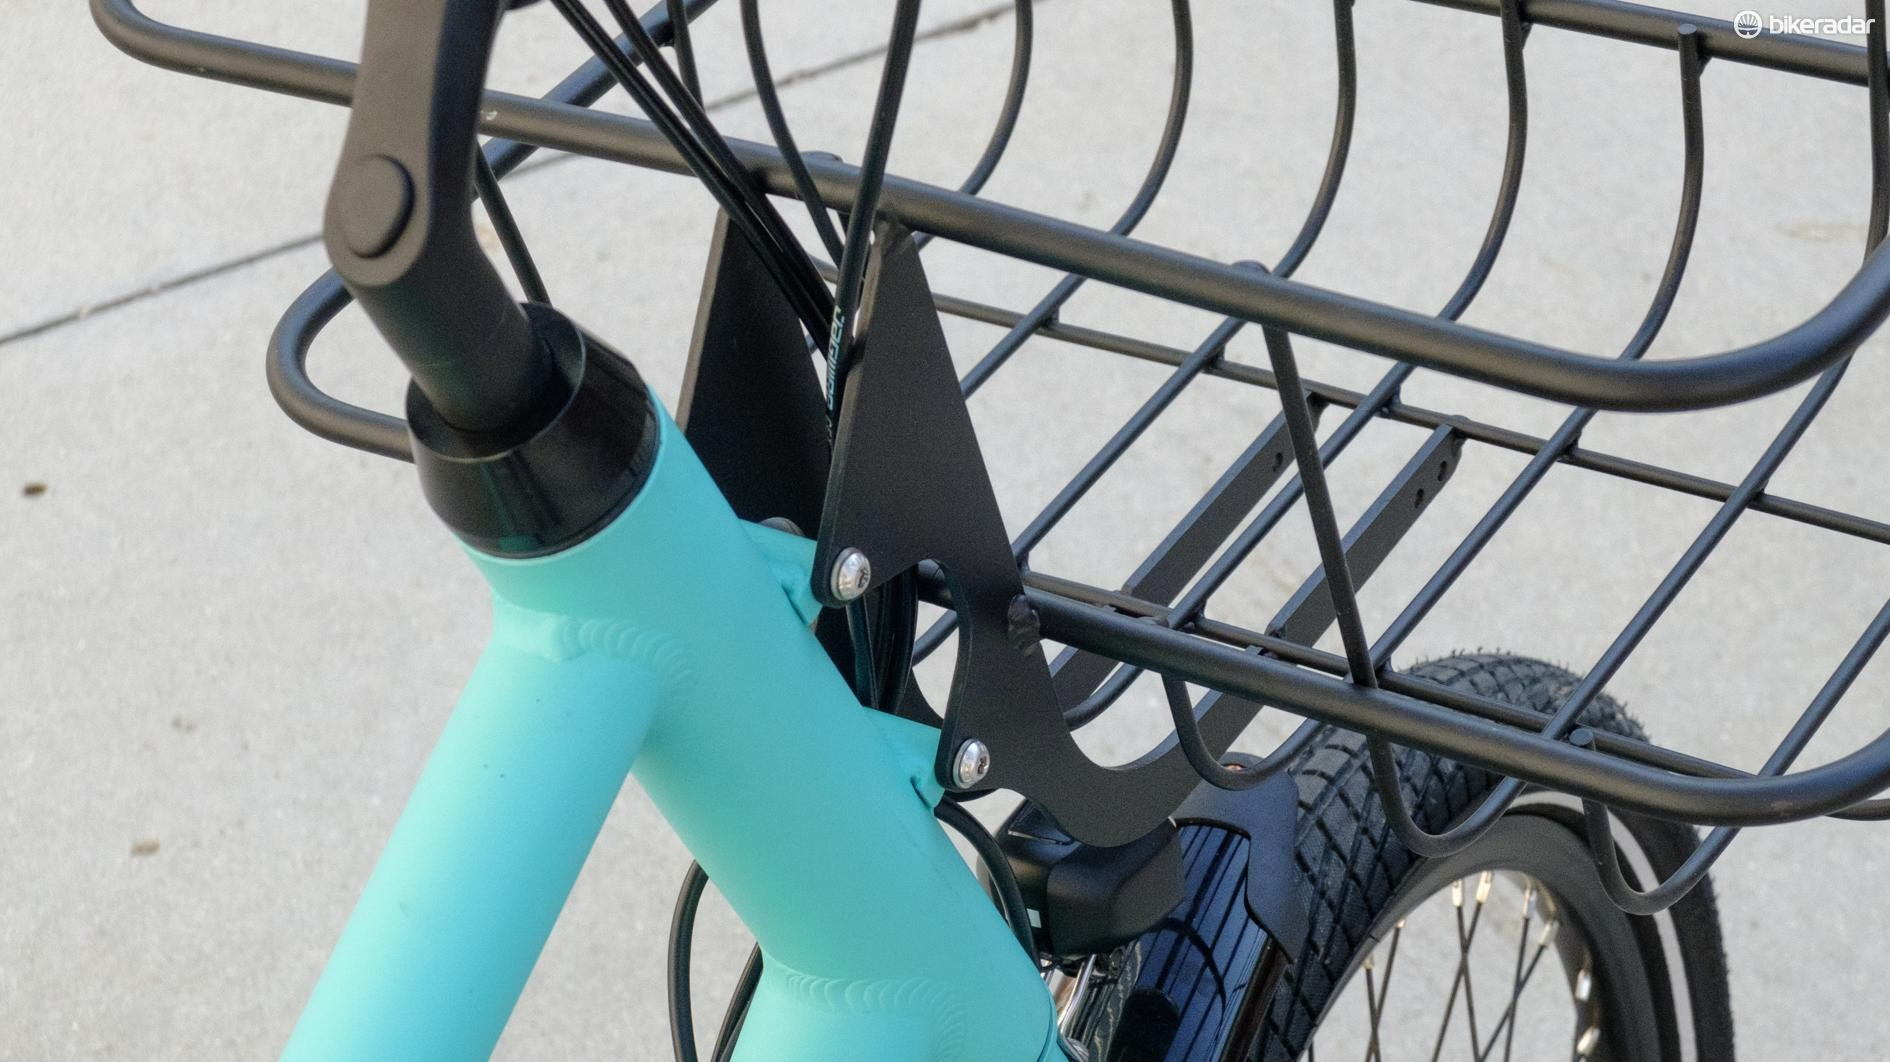 The front rack is fixed to the frame, creating an odd effect when cornering